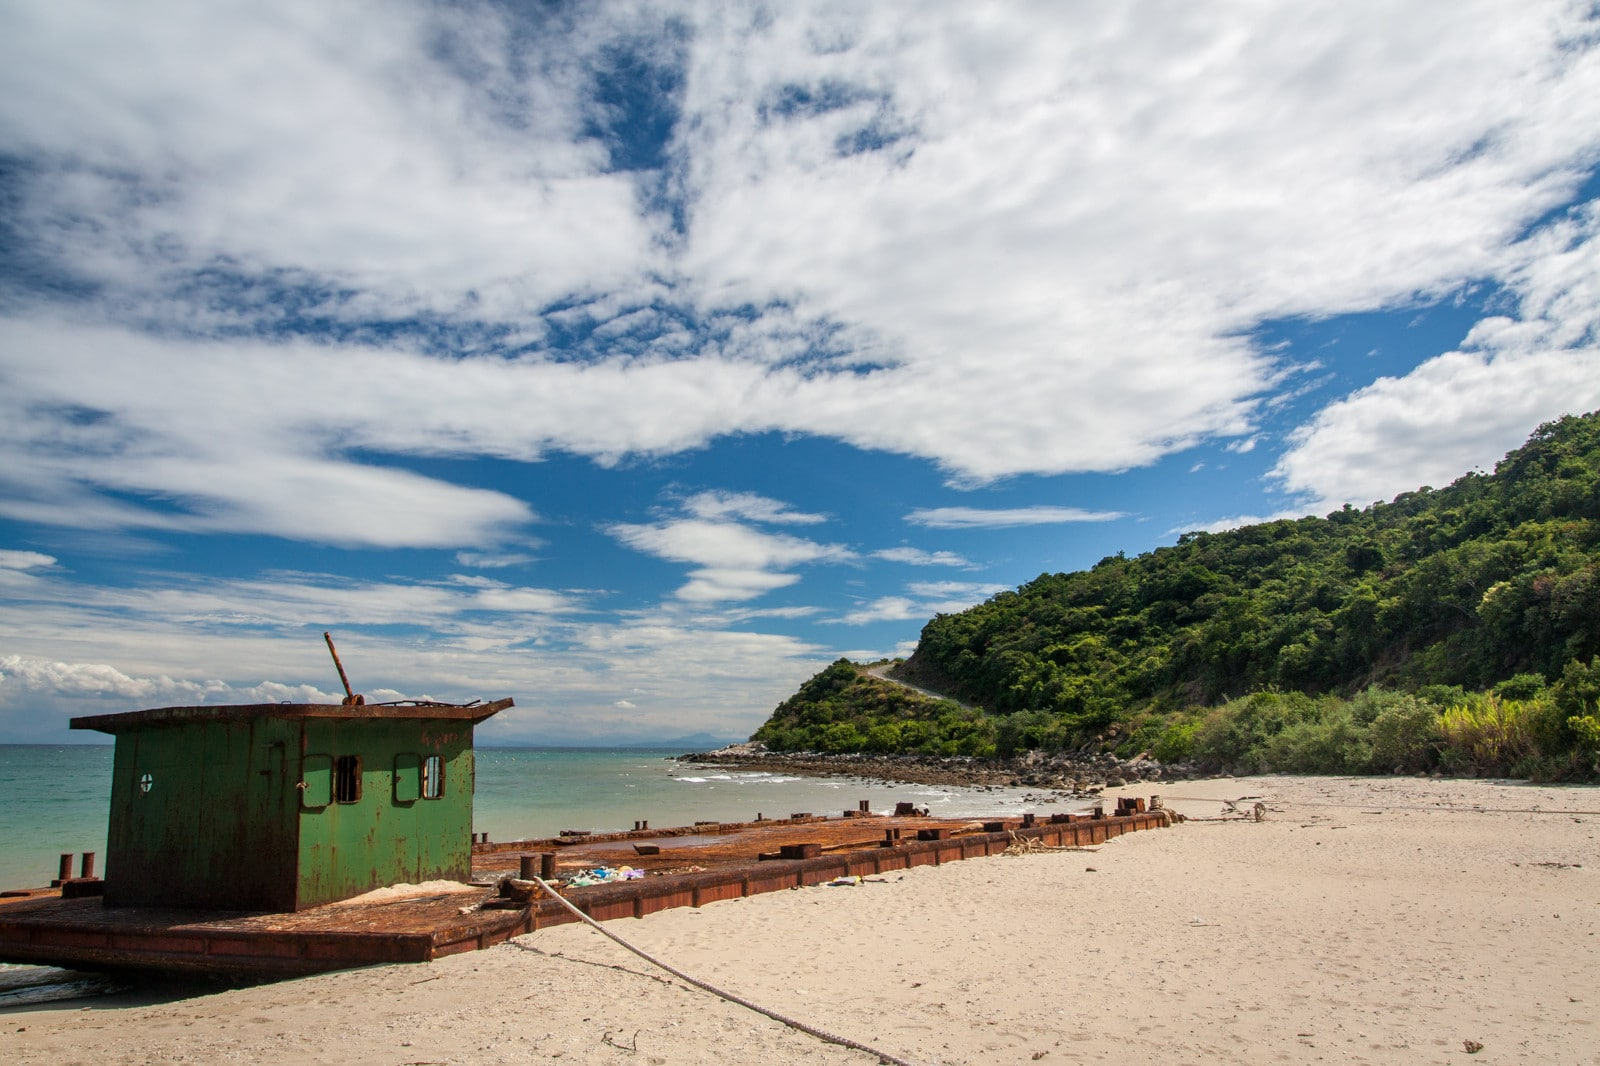 Image of the beach on one of the cham islands in vietnam